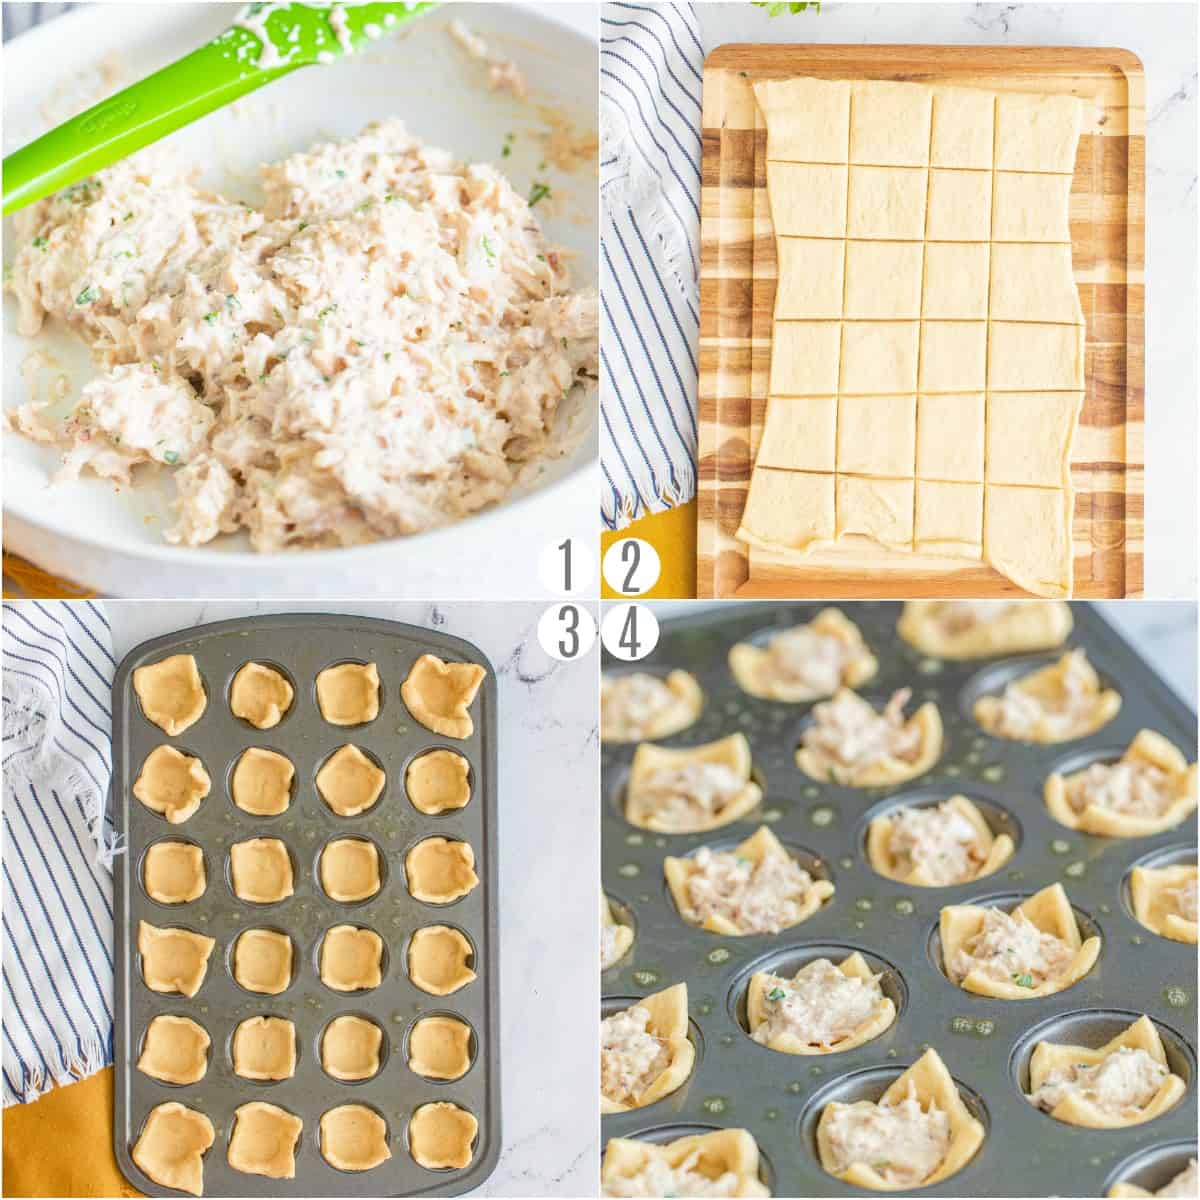 Step by step photos showing how to make crab puffs.